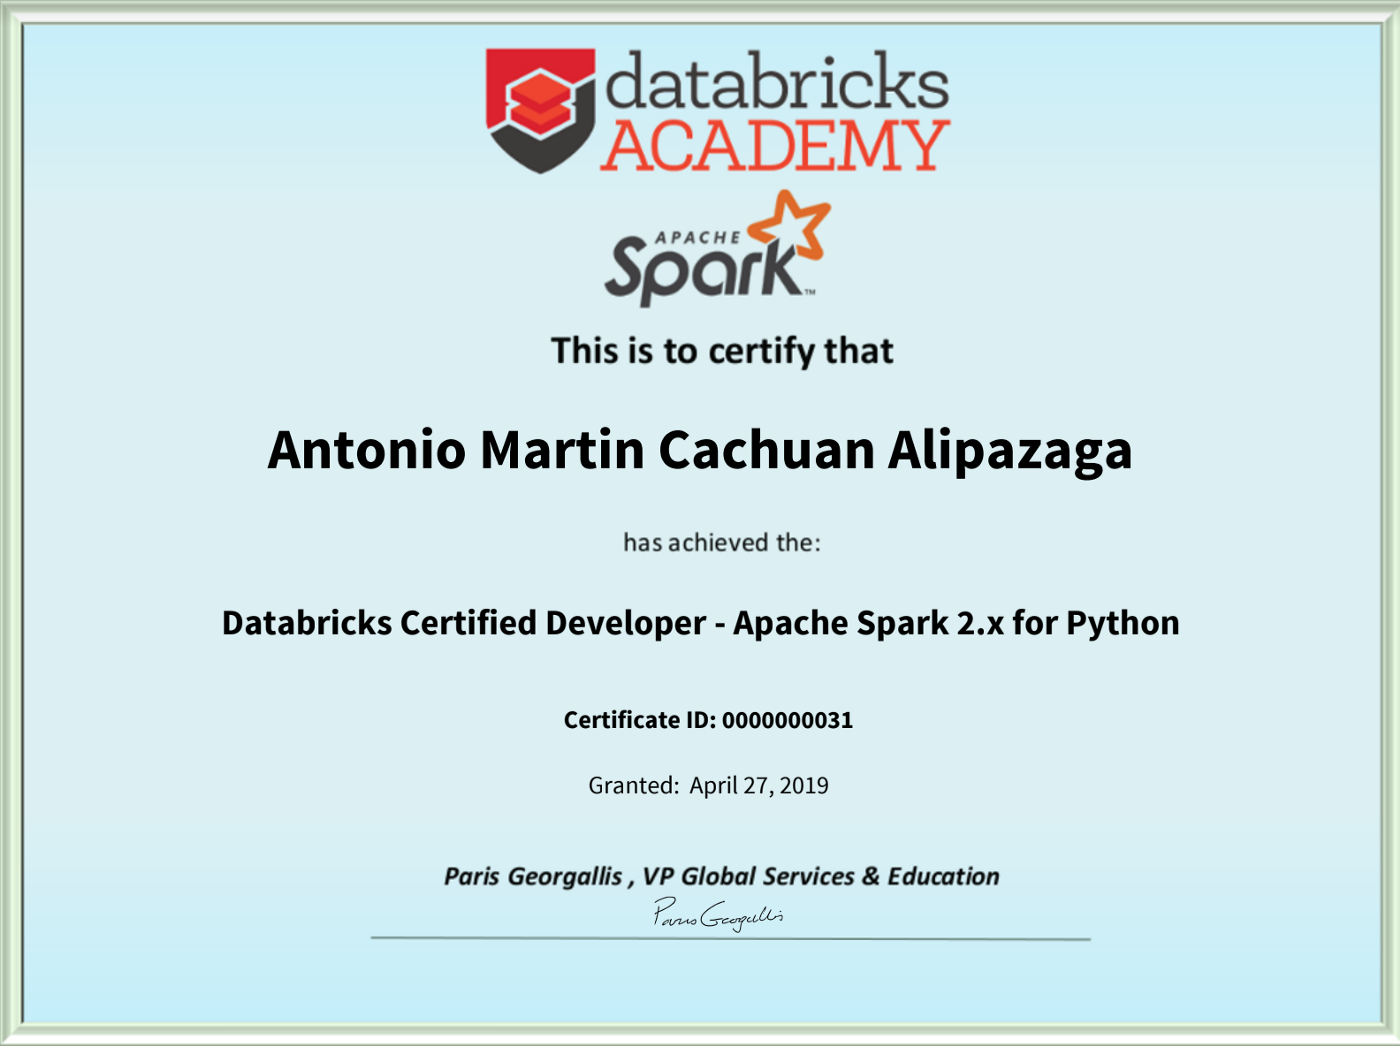 My 10 recommendations after getting the Databricks Certification for